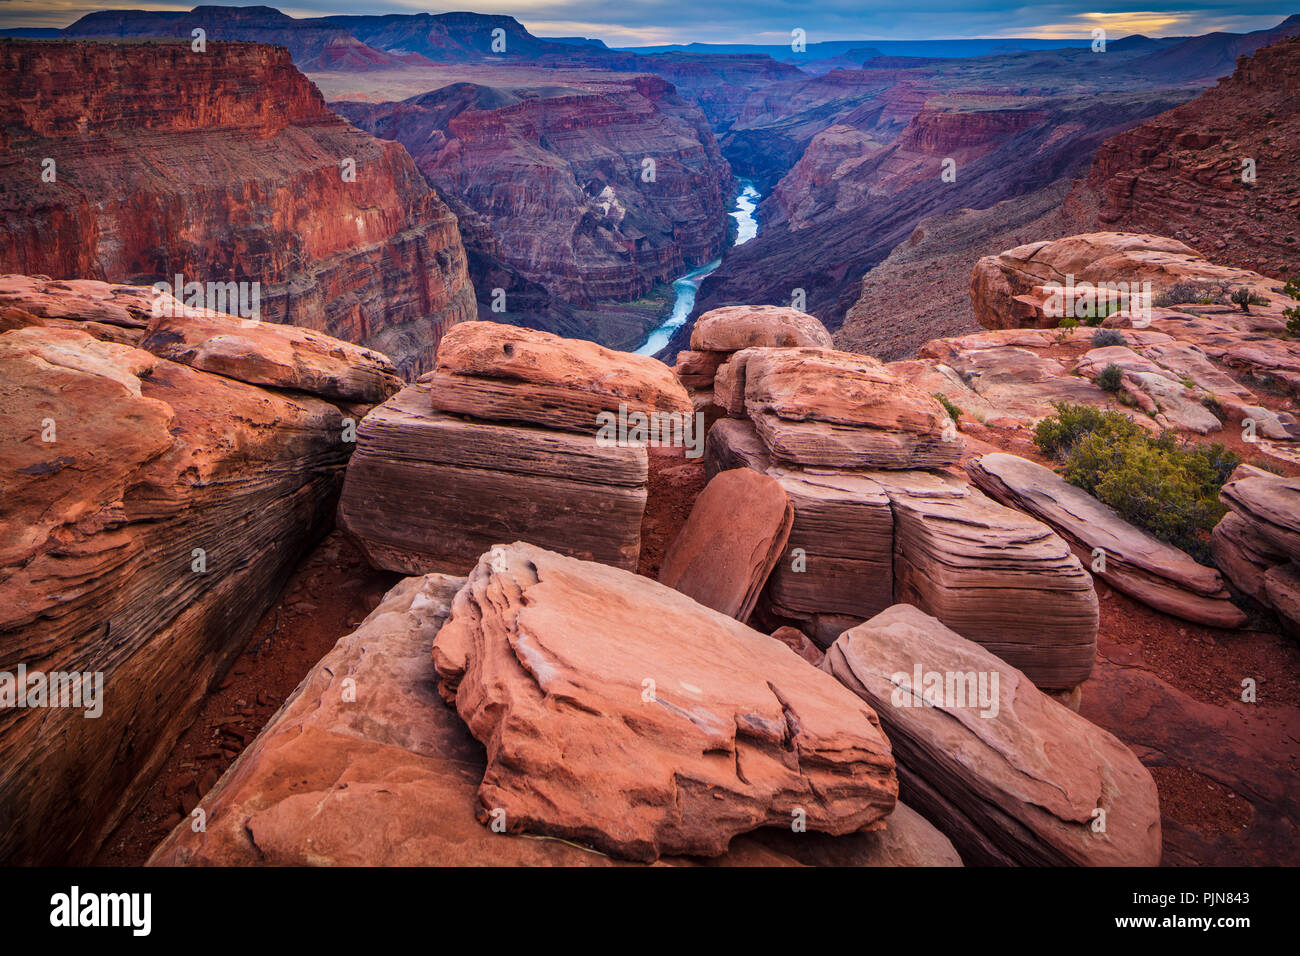 Grand Canyon de Toroweap Point. Le Grand Canyon est un canyon aux flancs abrupts sculptés par le fleuve Colorado dans l'état de l'Arizona. Photo Stock